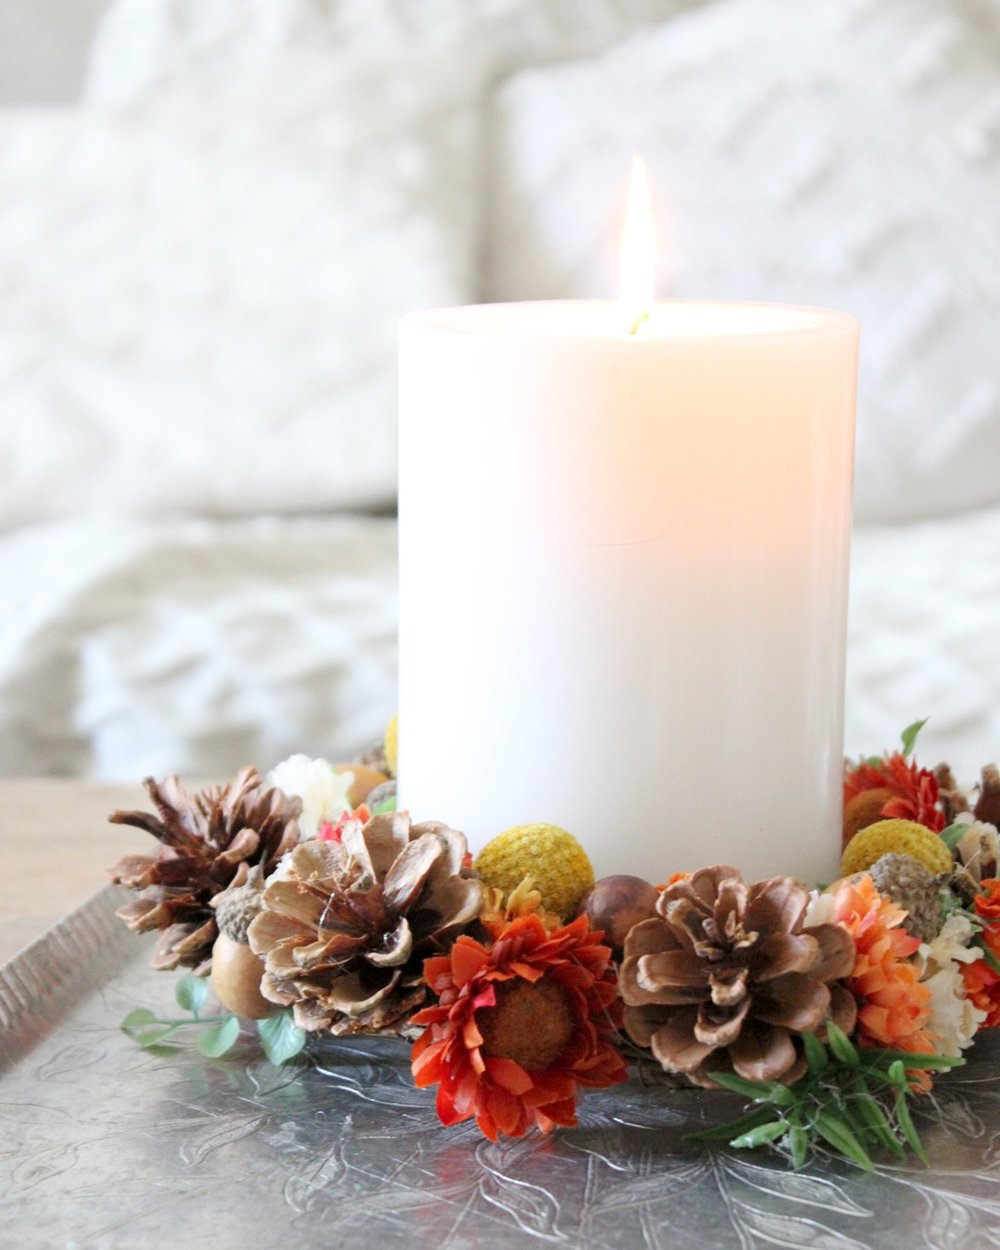 DIY-fall-wreath-candle-12.jpg